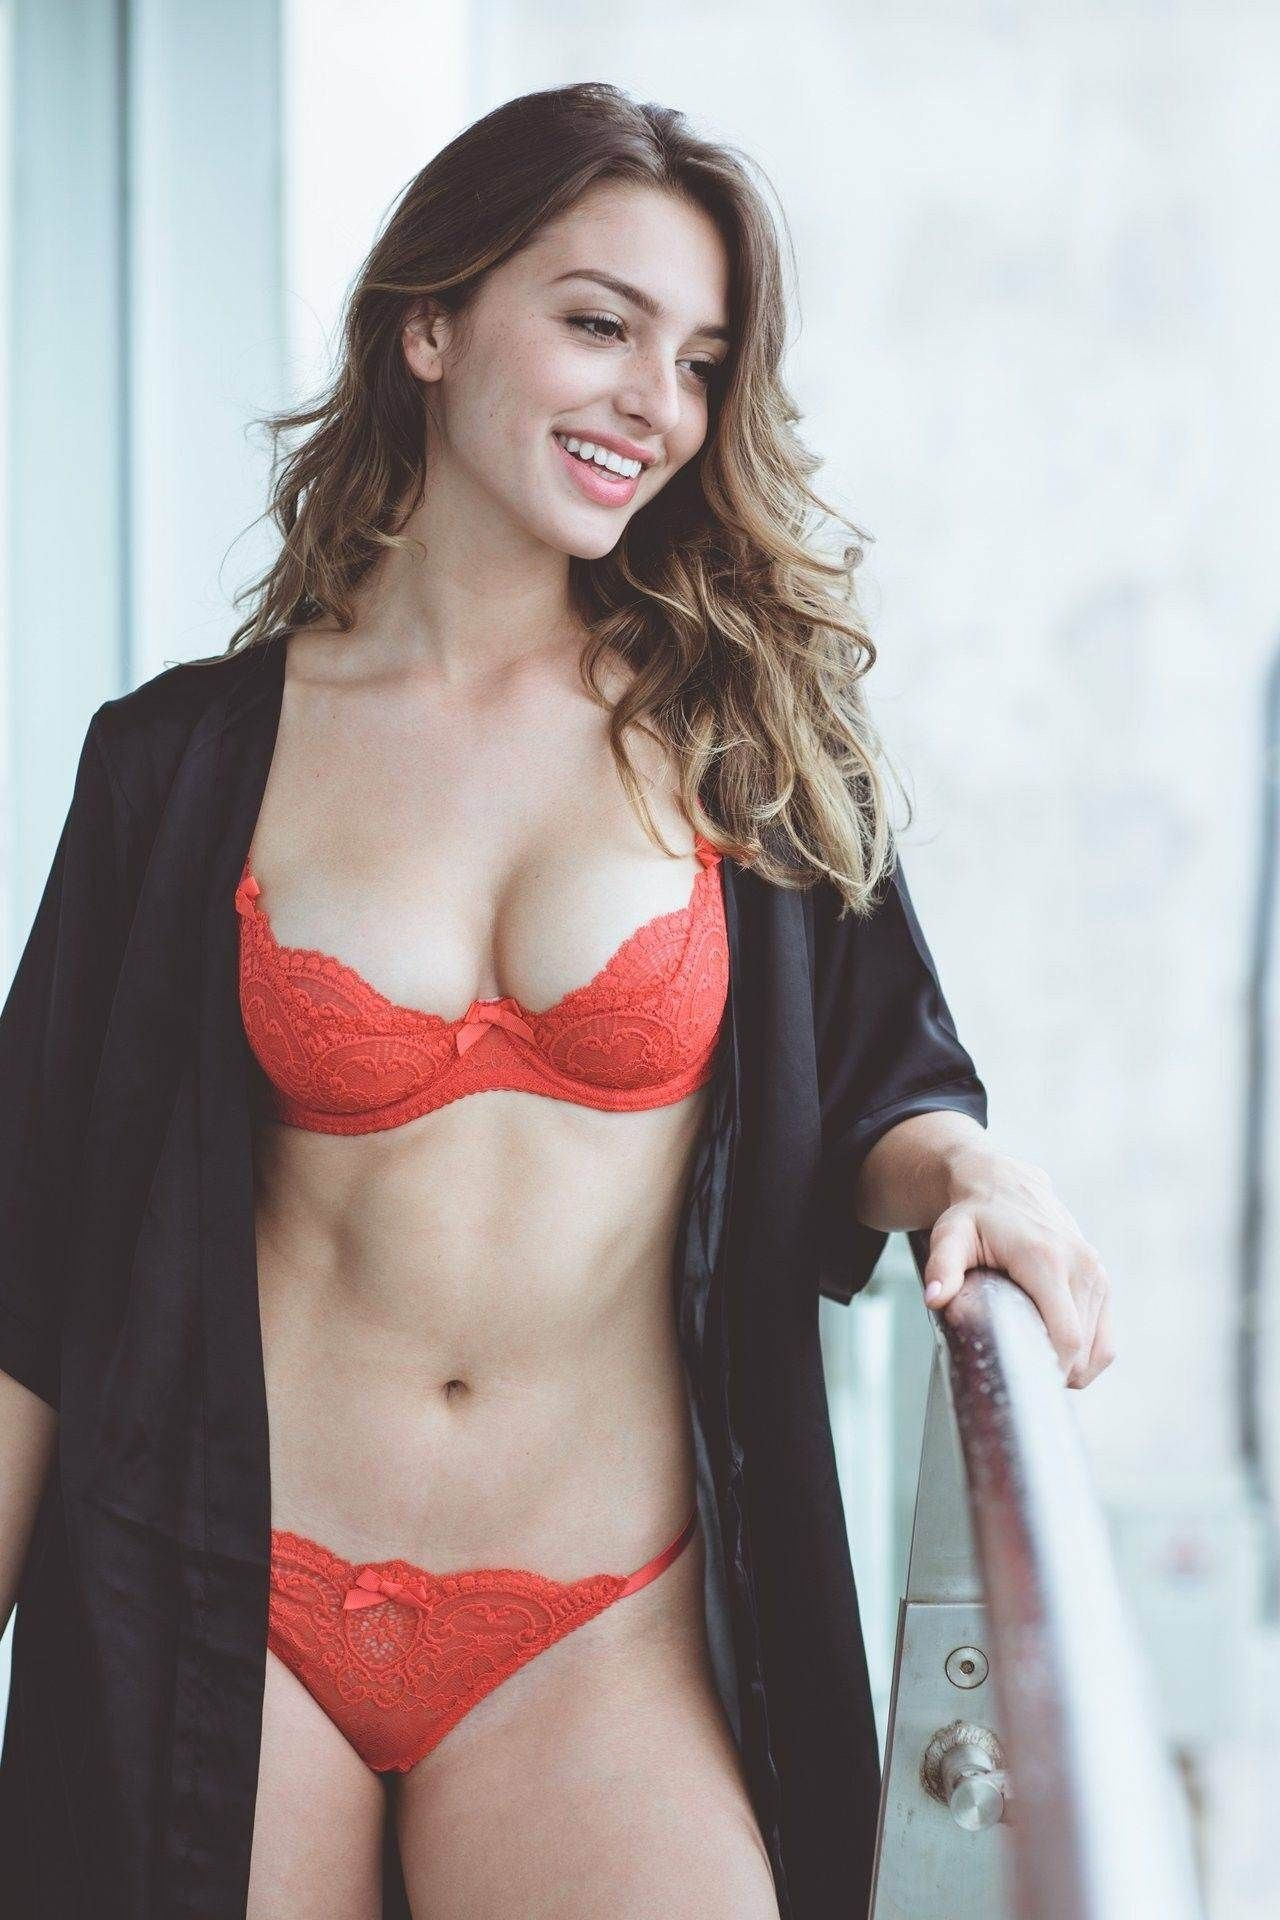 Amazing red lingerie fantastic cleavage and panties. Celine Farach 91f702222